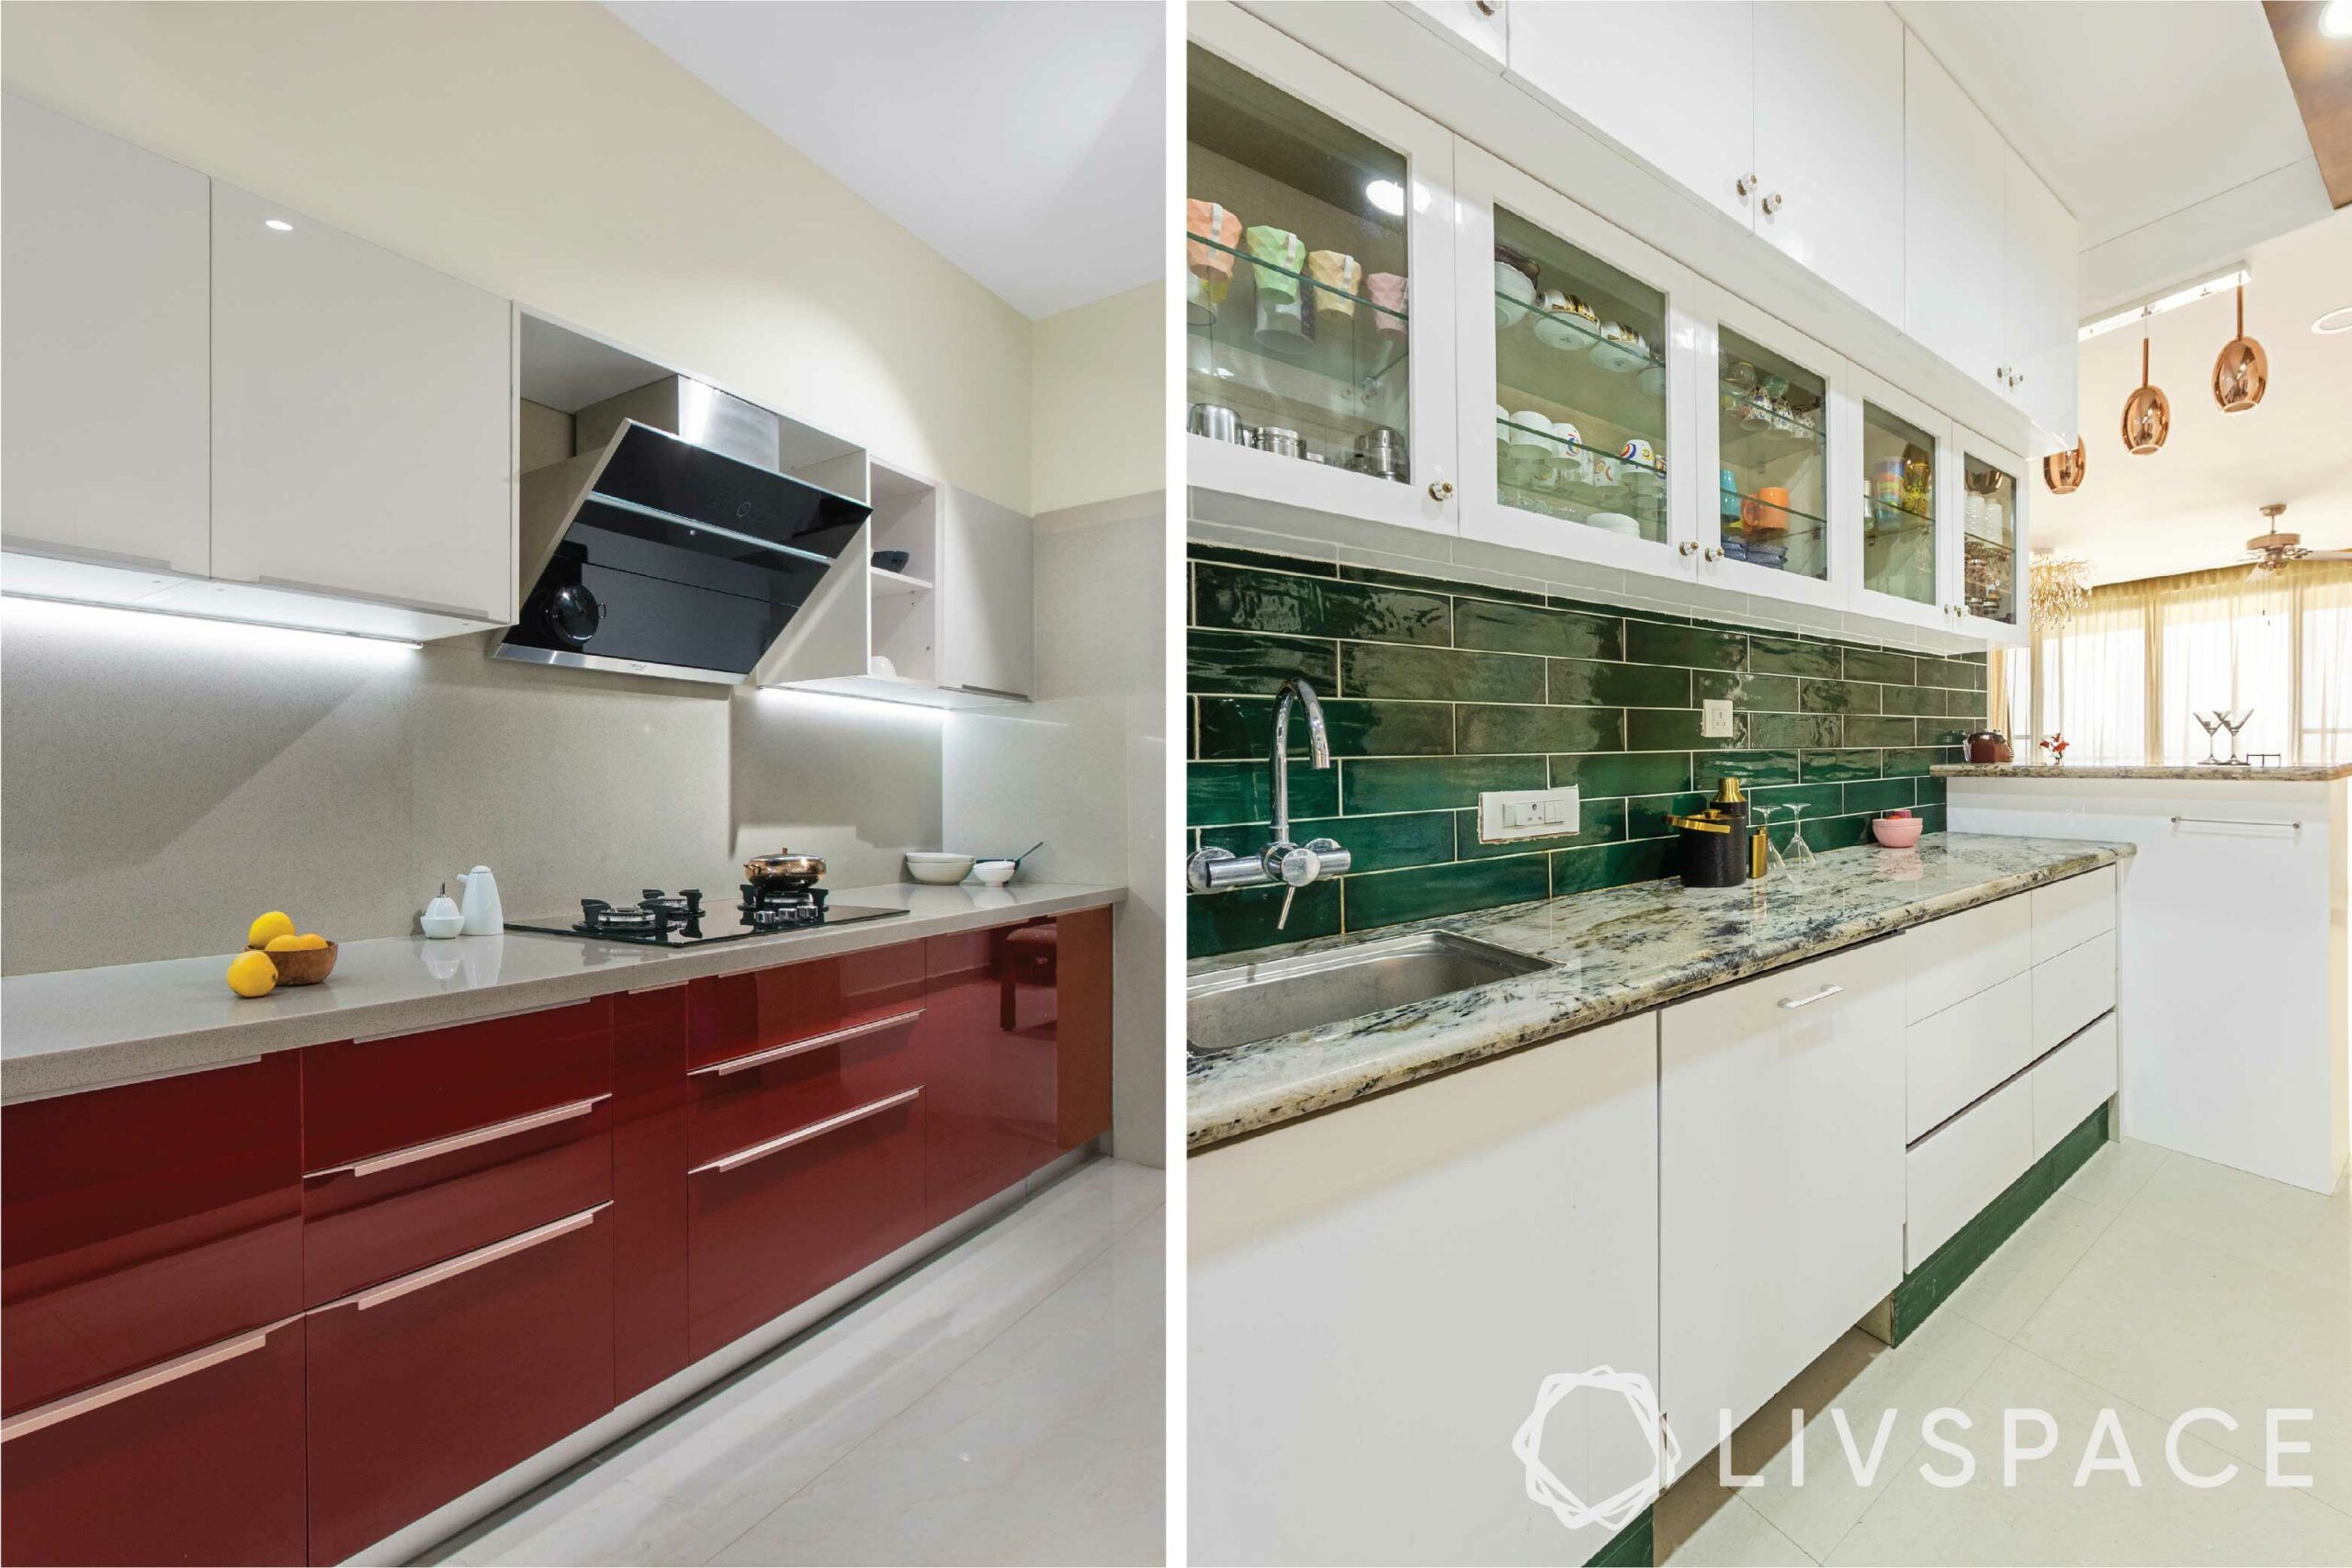 acrylic kitchen cabinets-collage